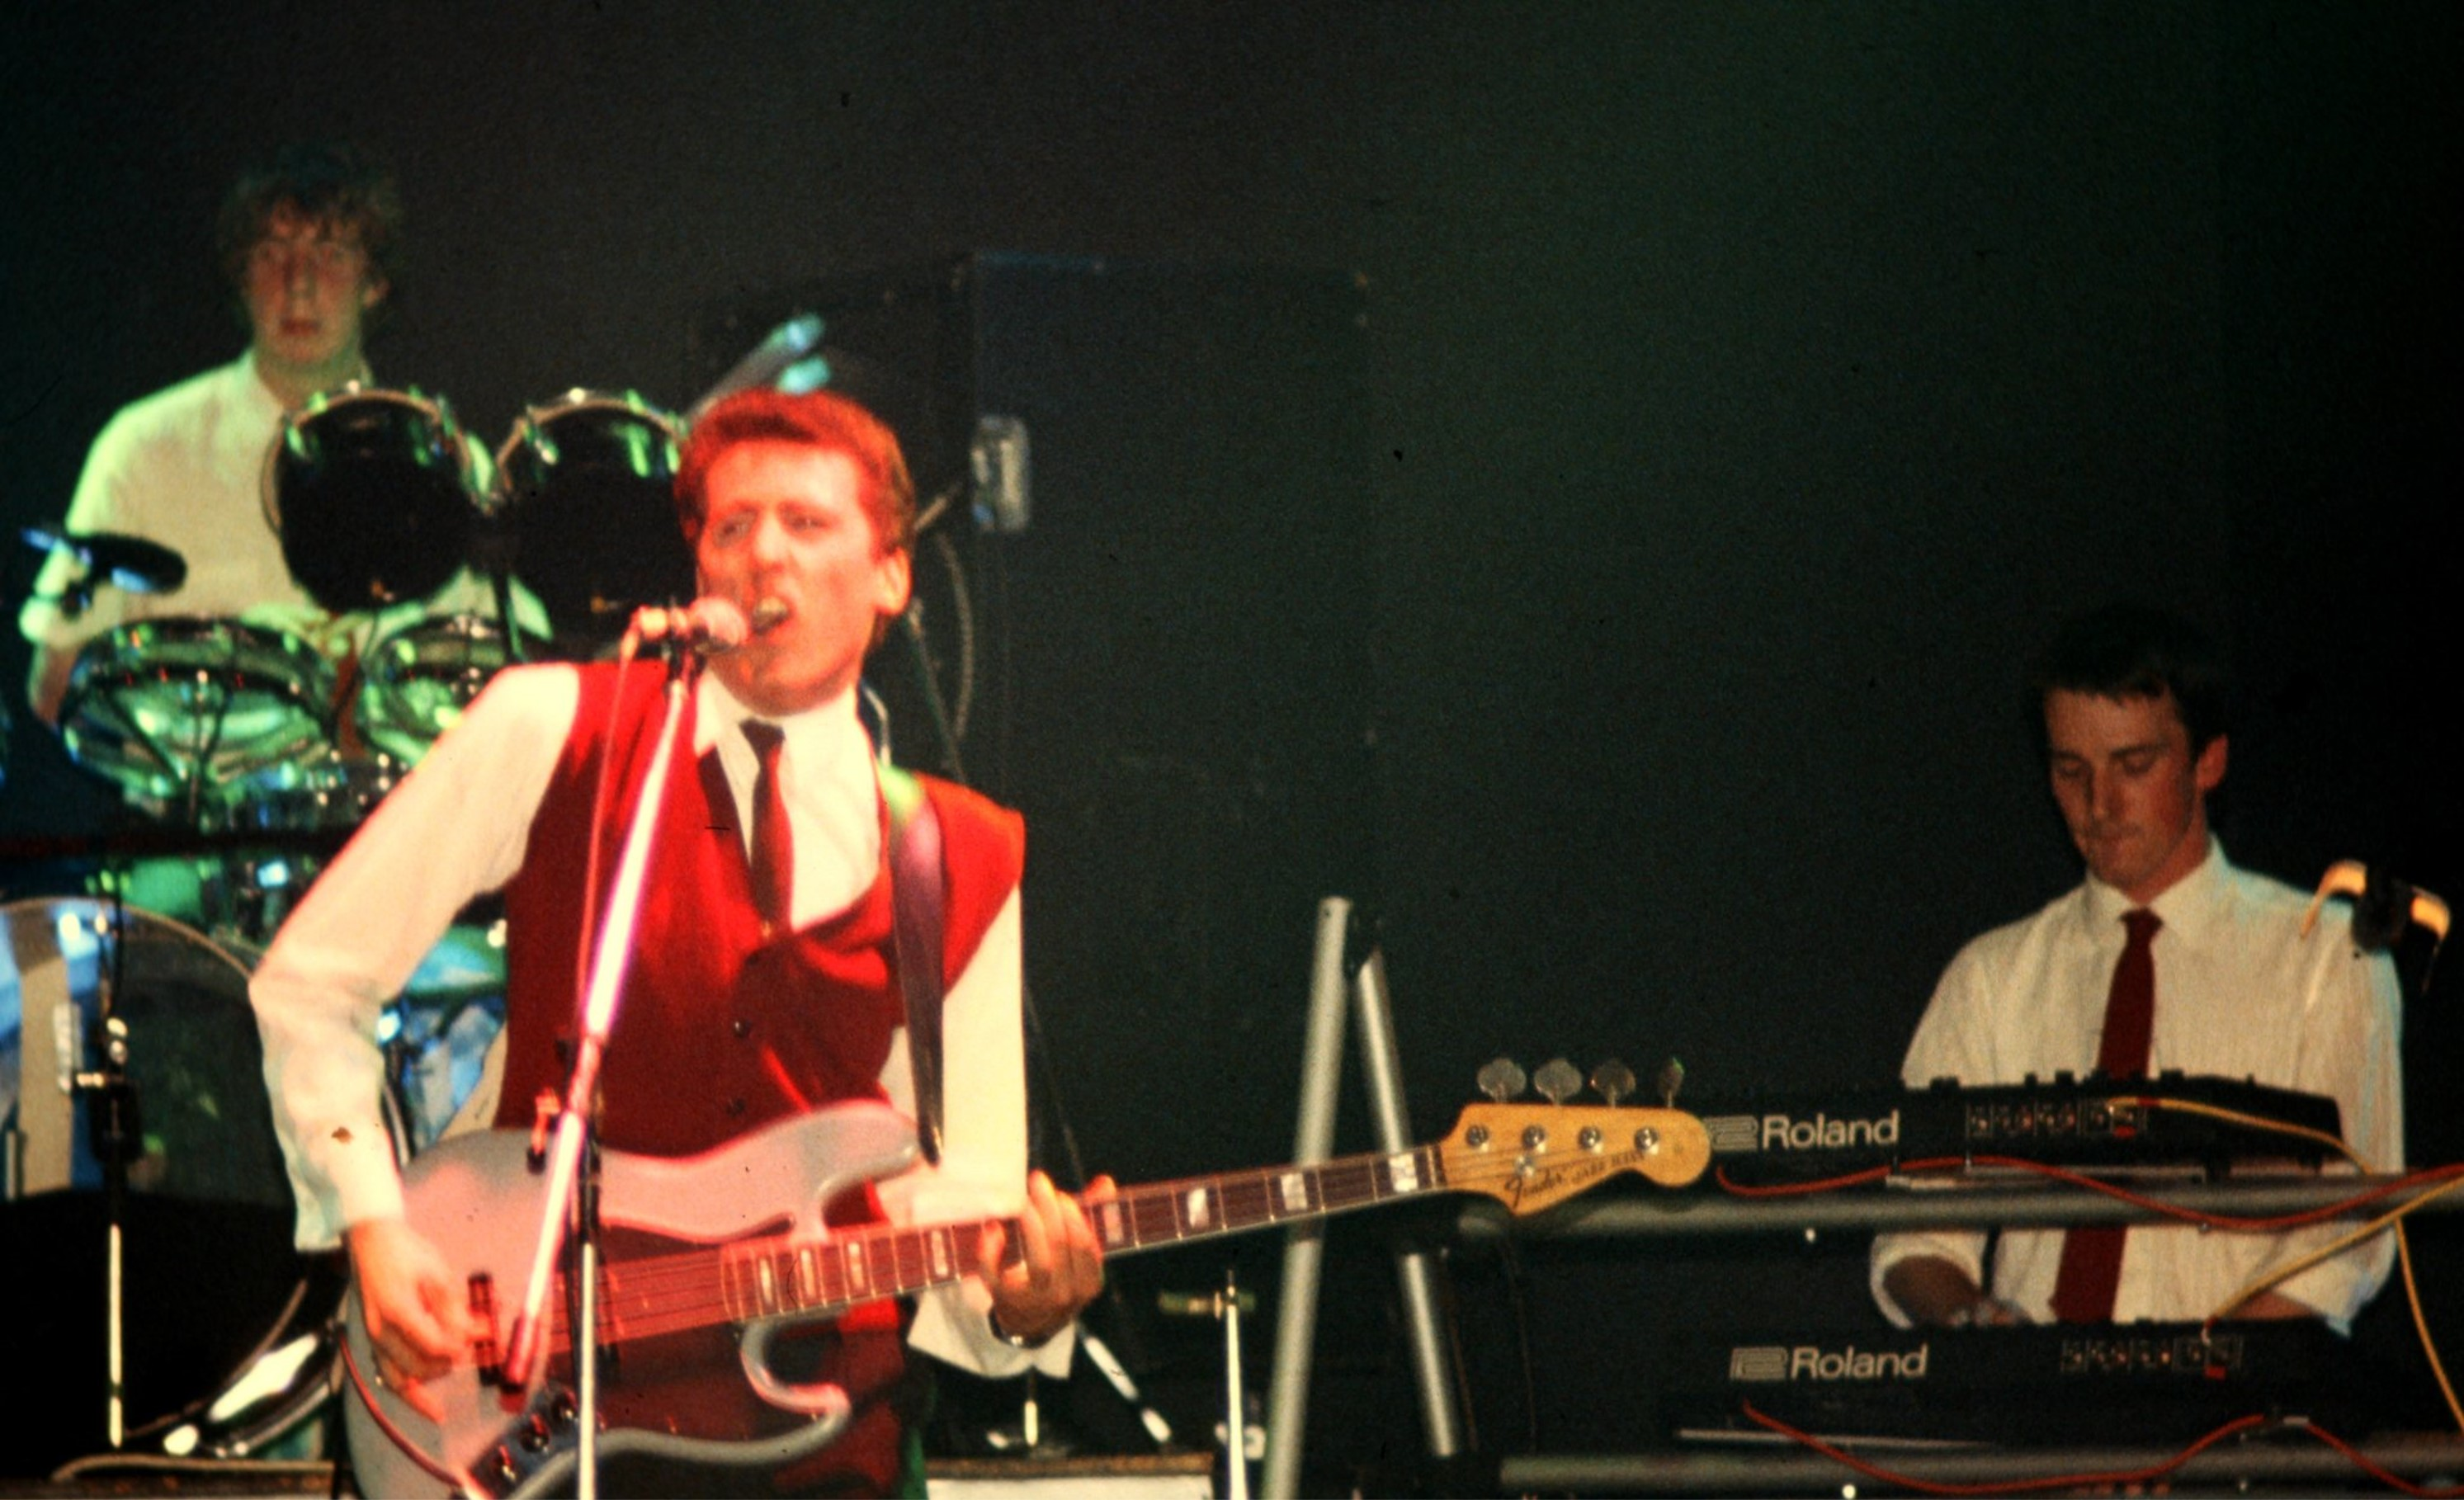 OMD at uea in 1980